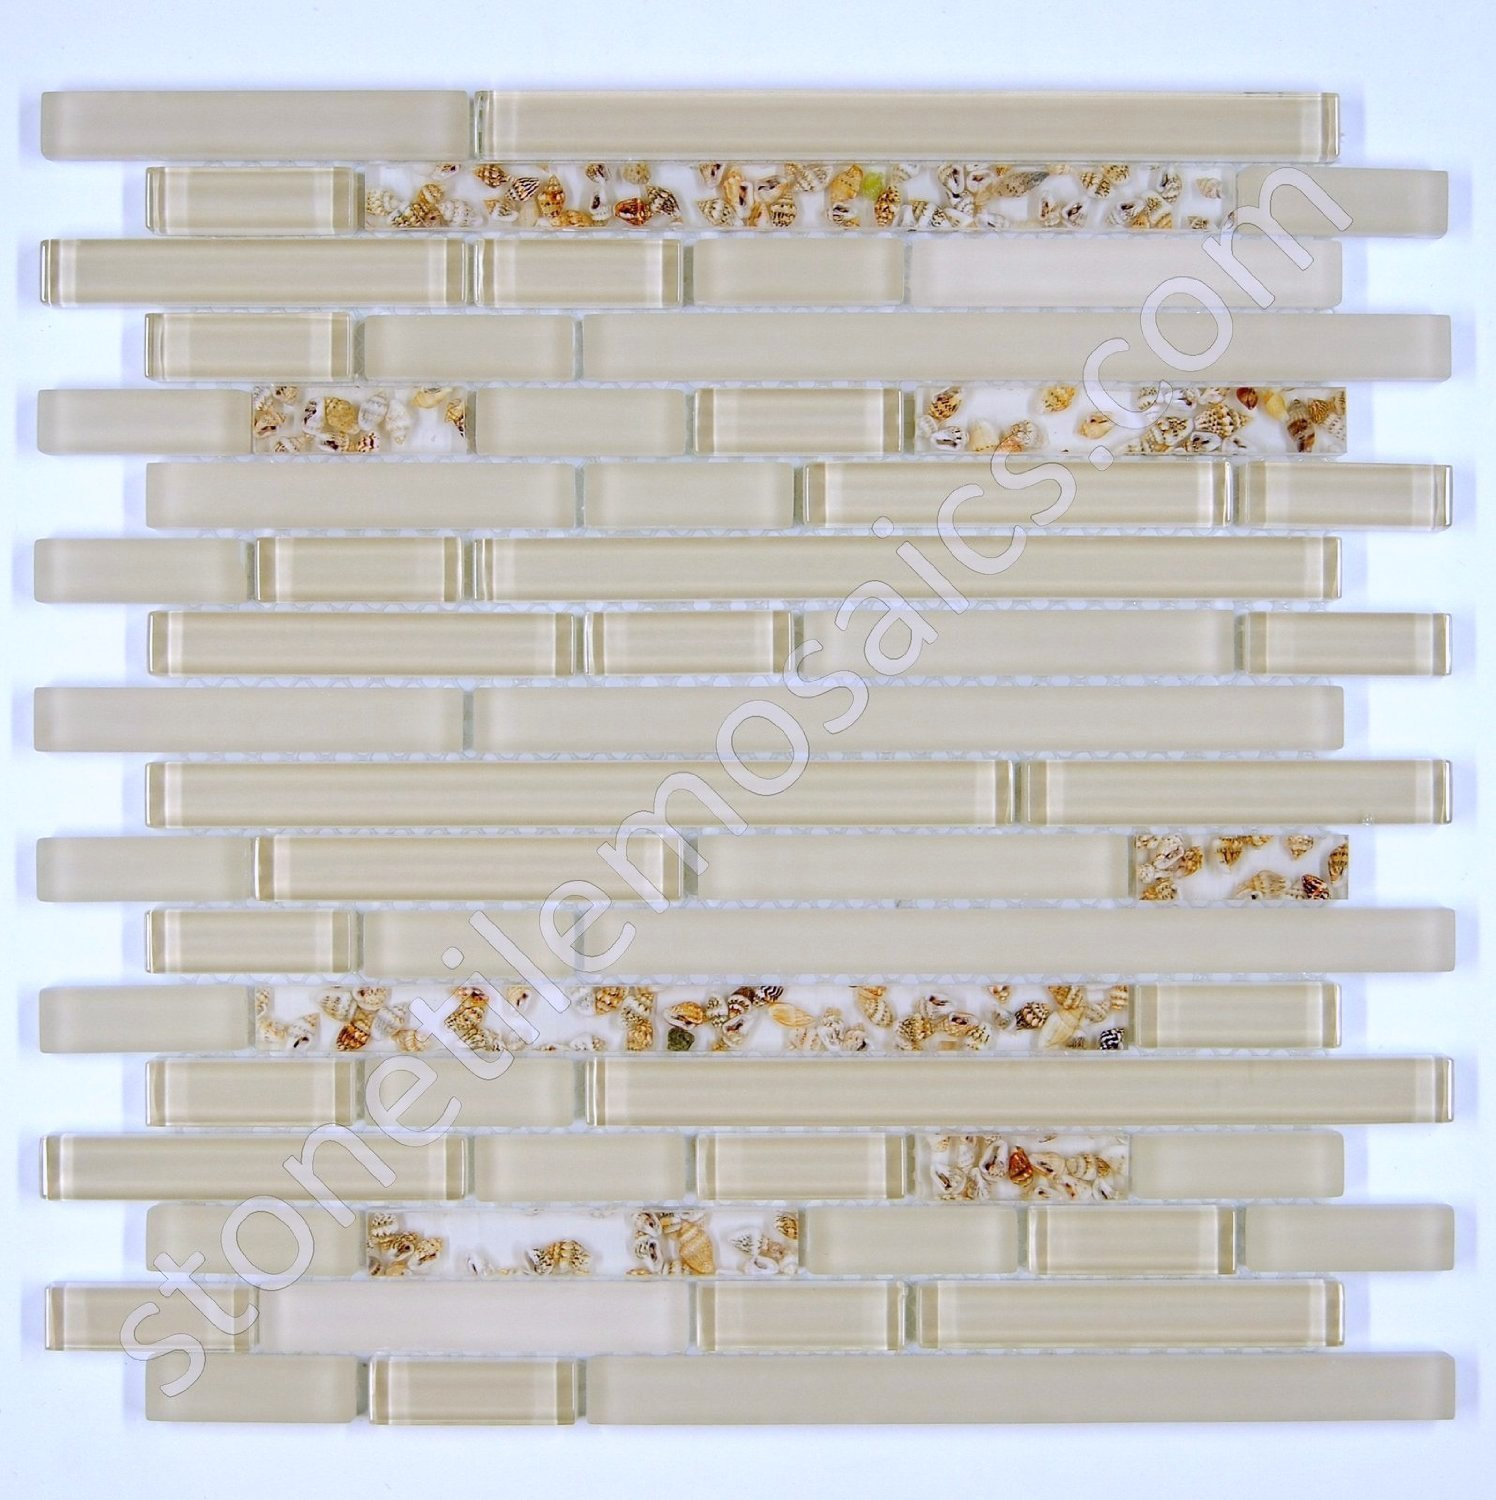 Vogue Premium Quality Seashells Glass Mixed Mosaic Random Pattern Tile for Backsplash and Bathroom Wall Designed in Italy (12x12) by Vogue Tile